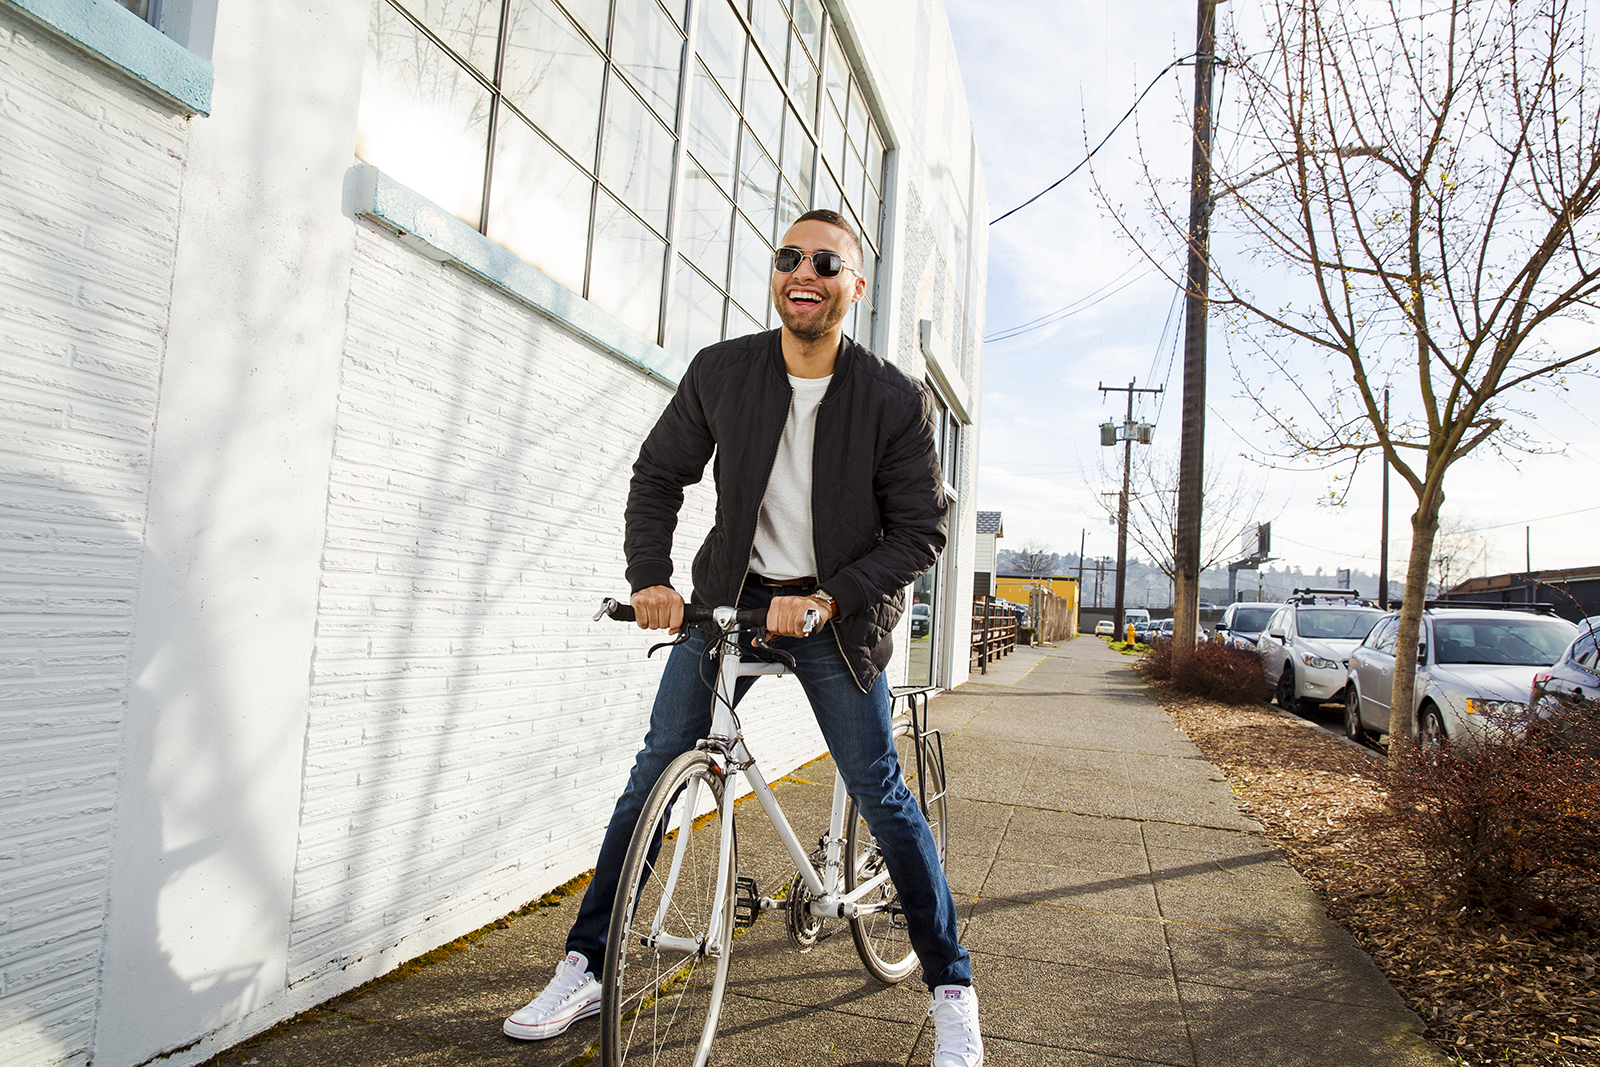 Lifestyle for Sharply Clothing  taken by Seattle photographer Dylan Priest.